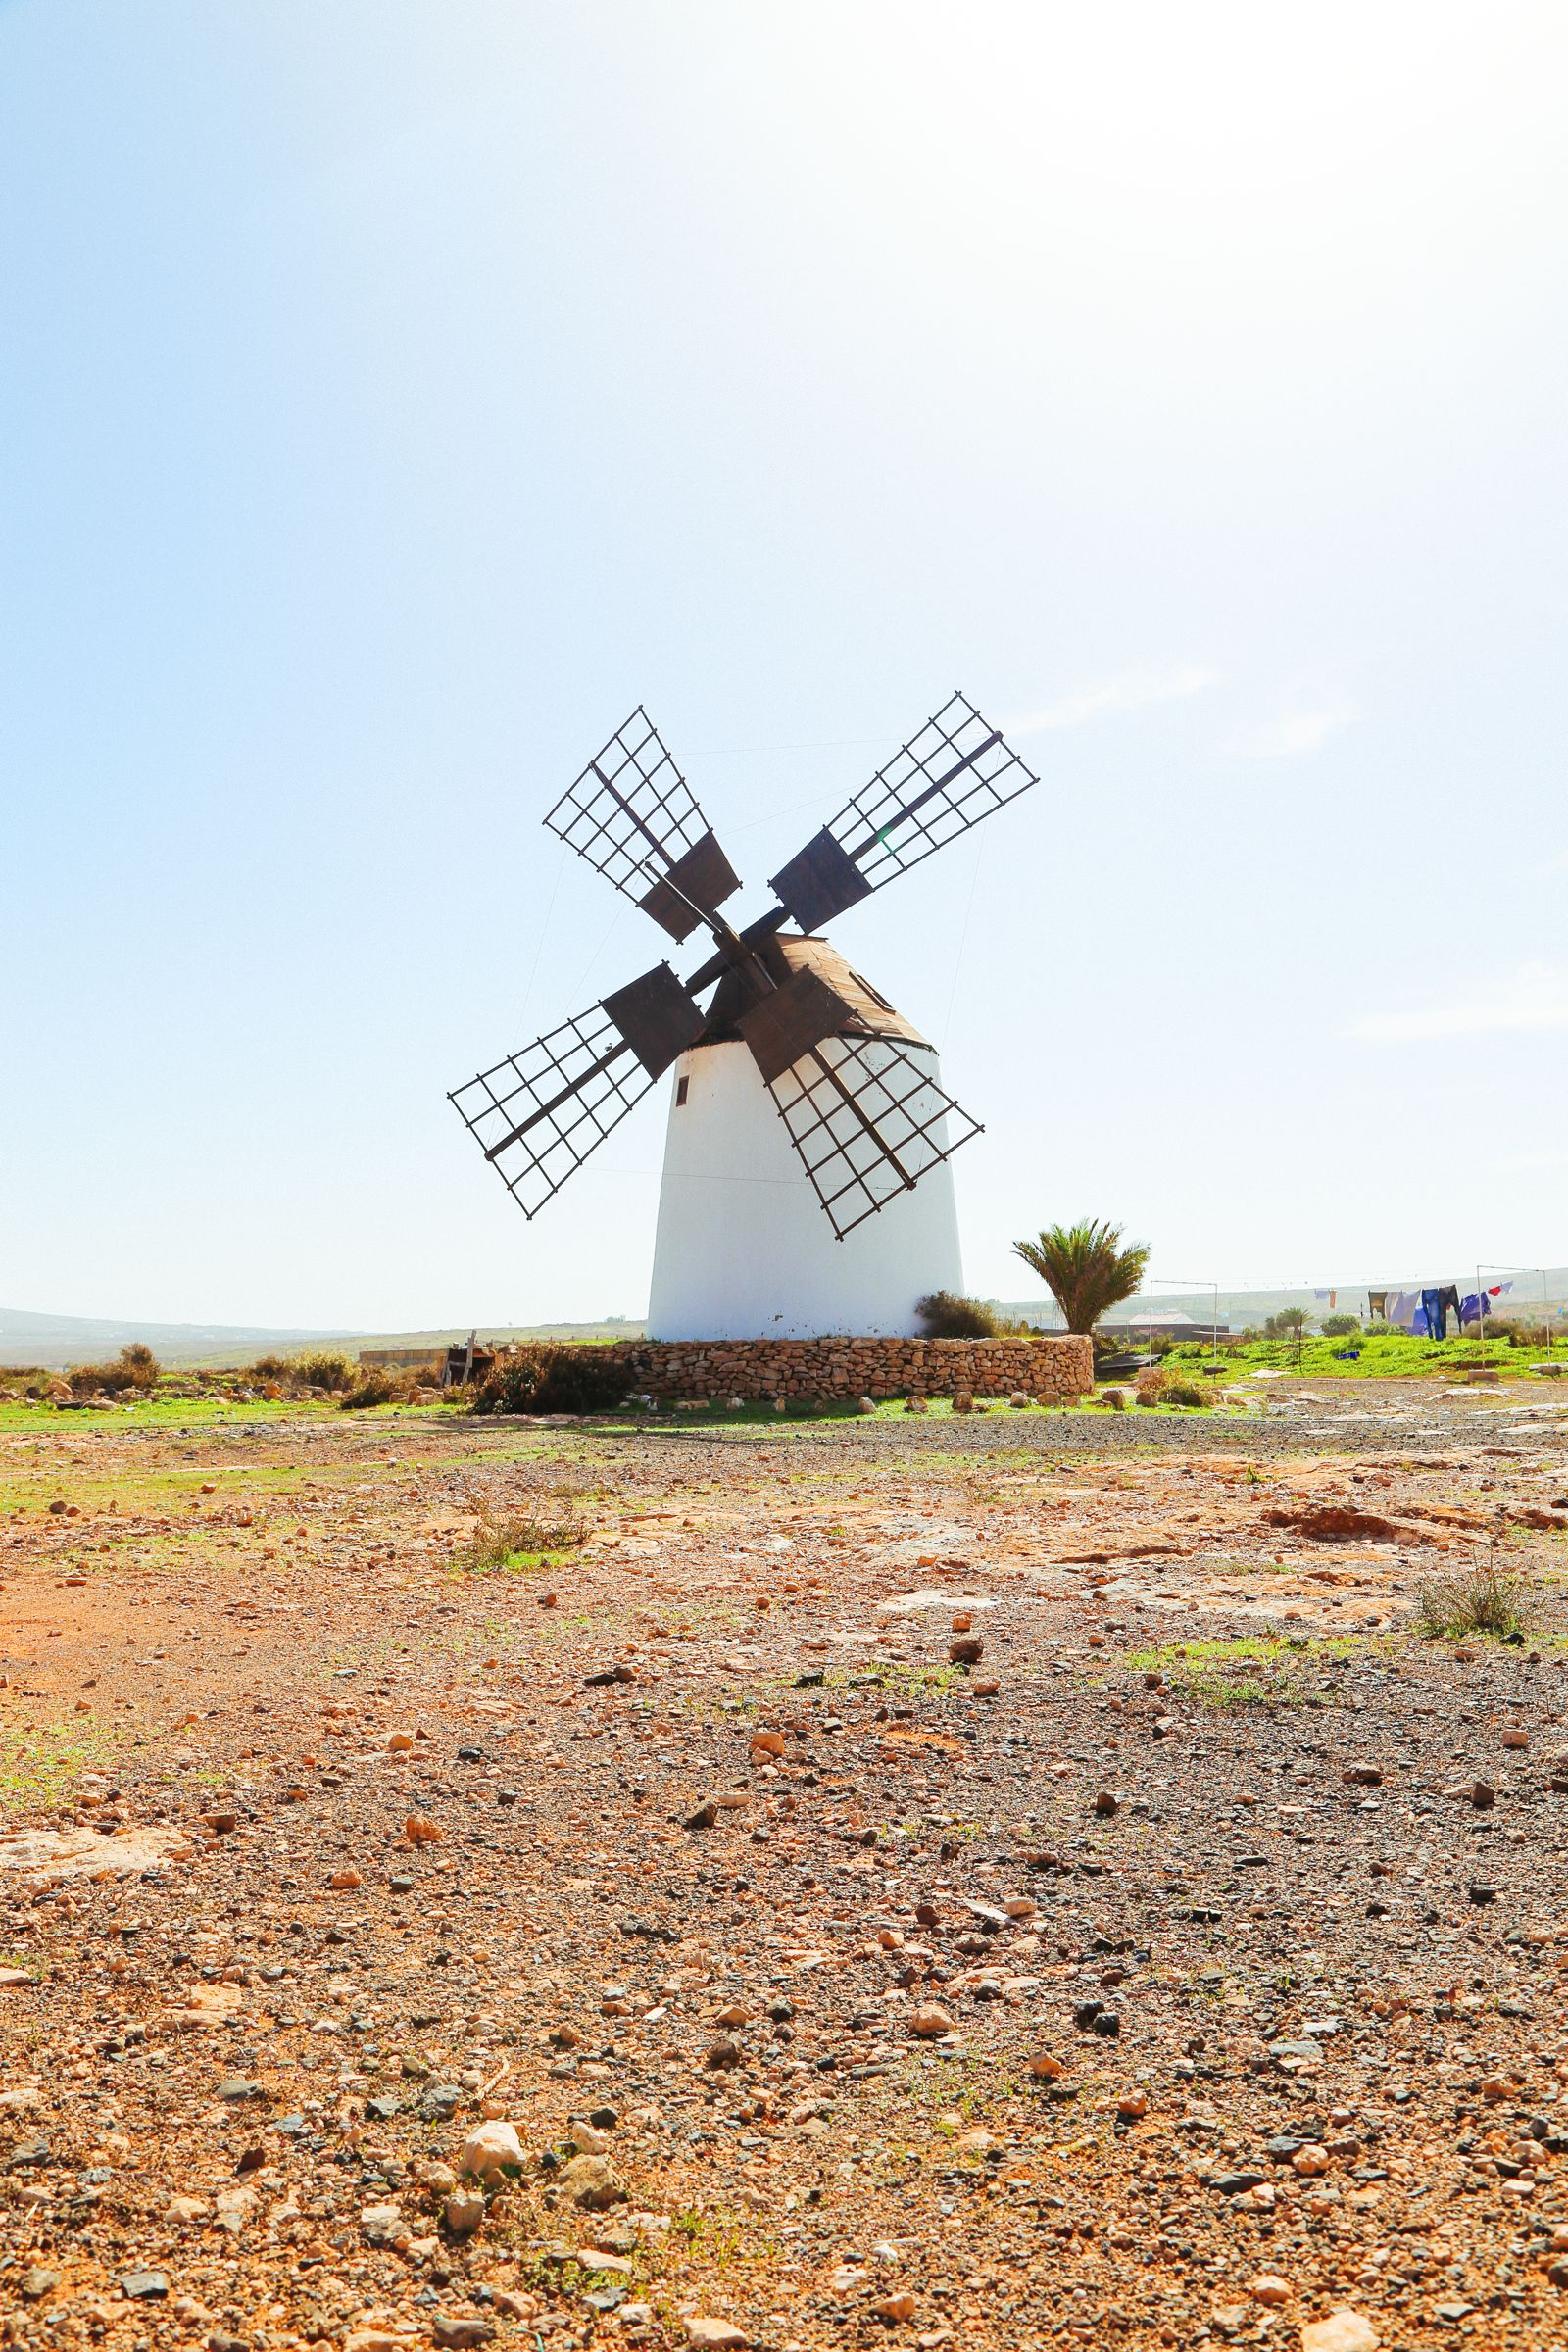 Sand-Dunes, Windmills And Cute Little Piglets In Fuerteventura, Canary Island, Spain (9)